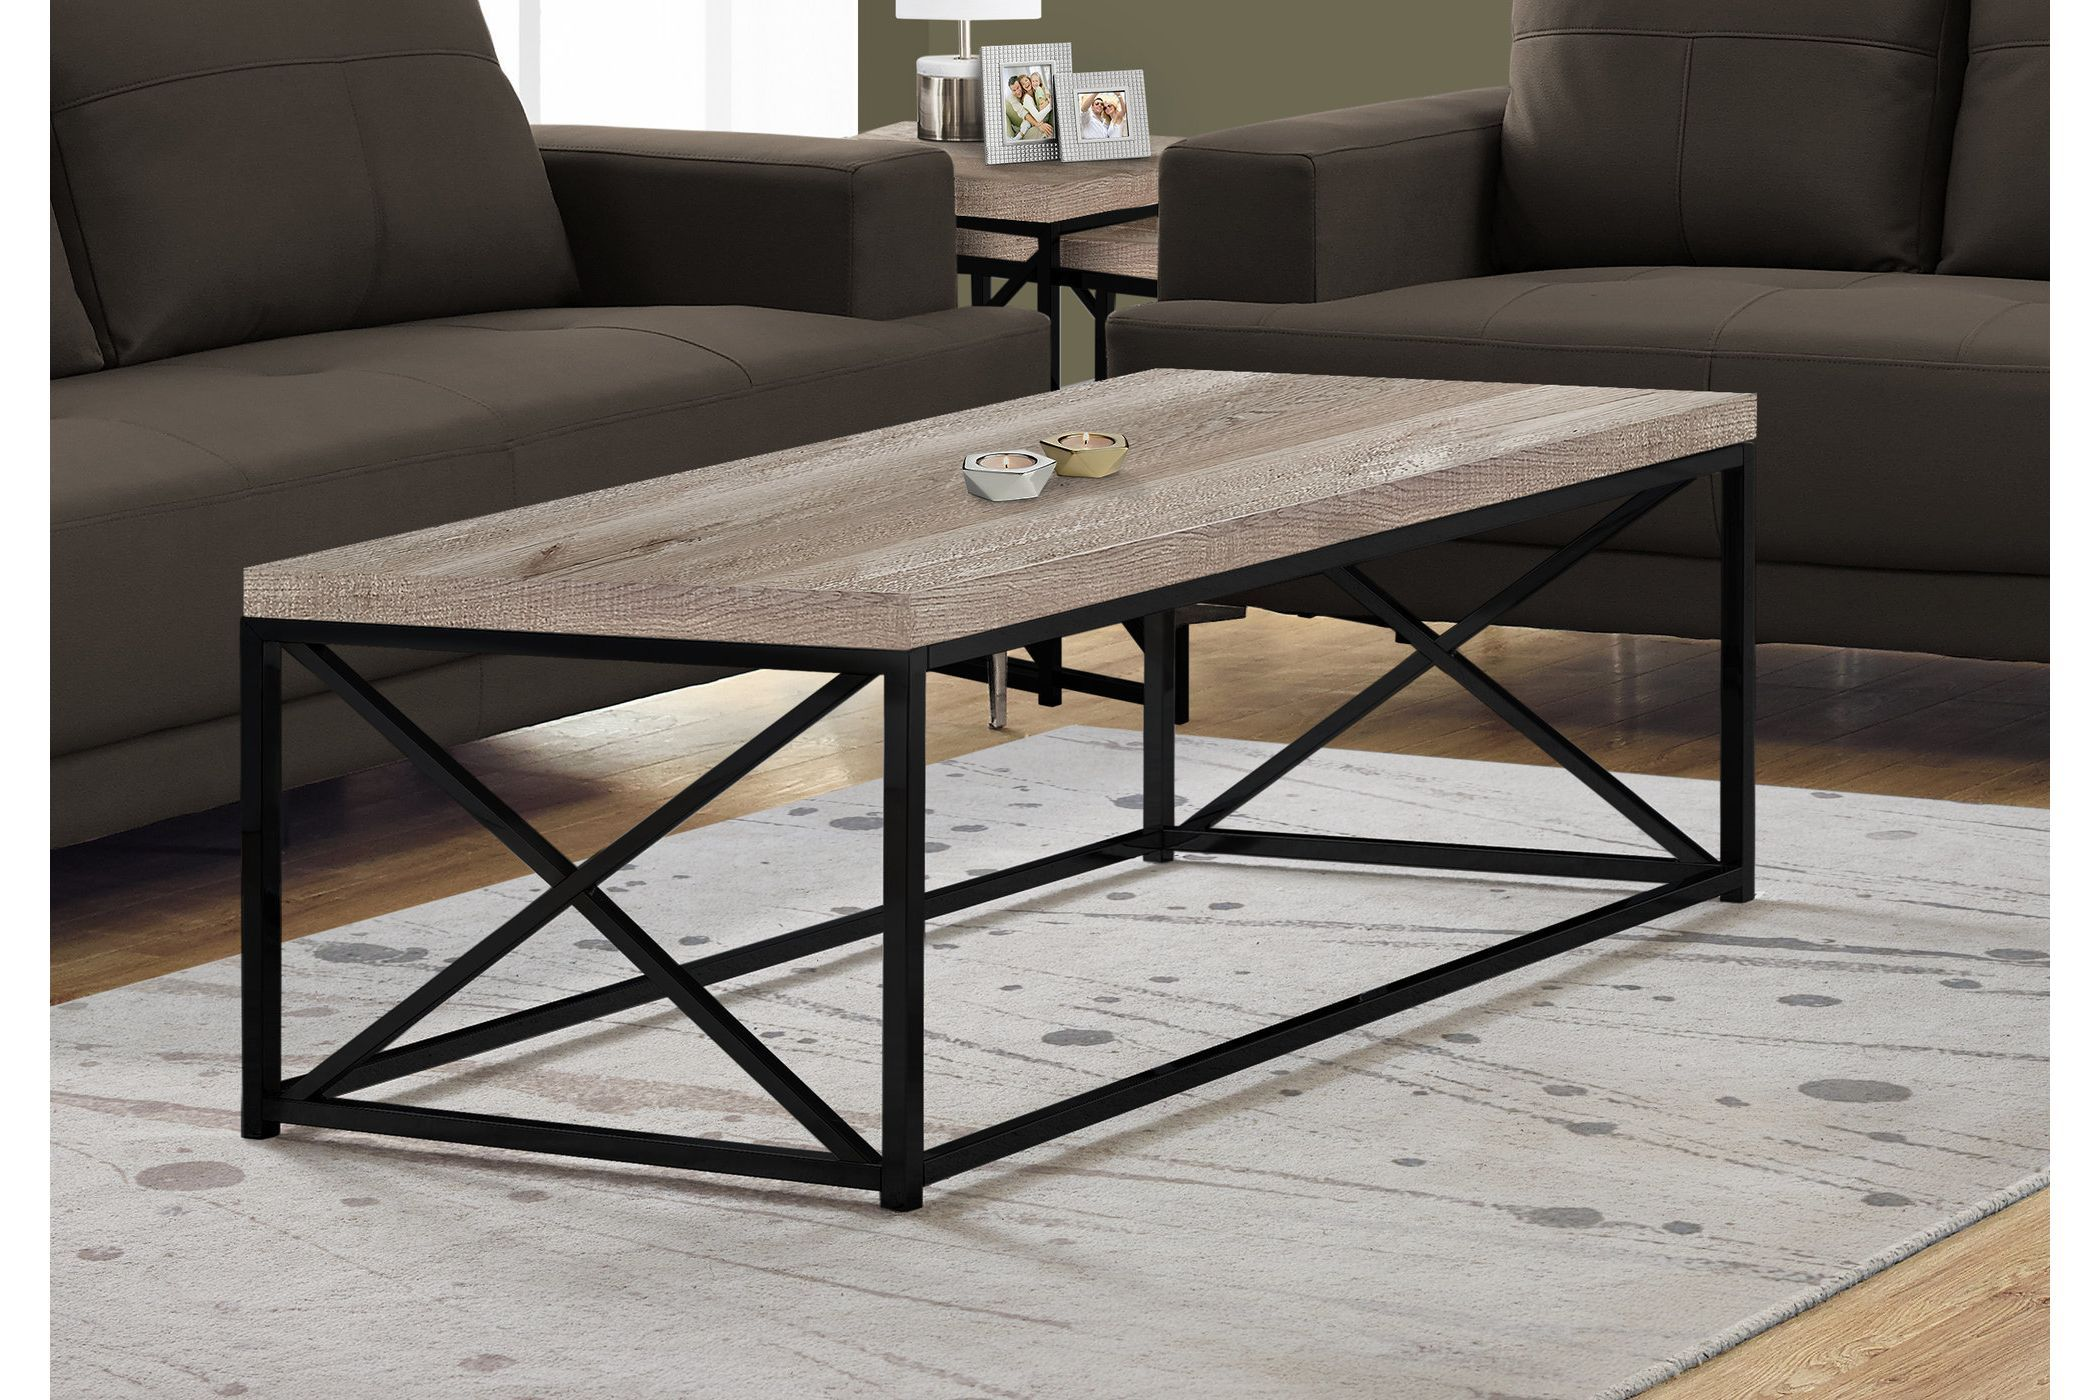 Taupe Reclaimed Wood Coffee Table At Gardner White In 2021 Coffee Table Wood Coffee Table Living Room Coffee Table [ 1400 x 2100 Pixel ]